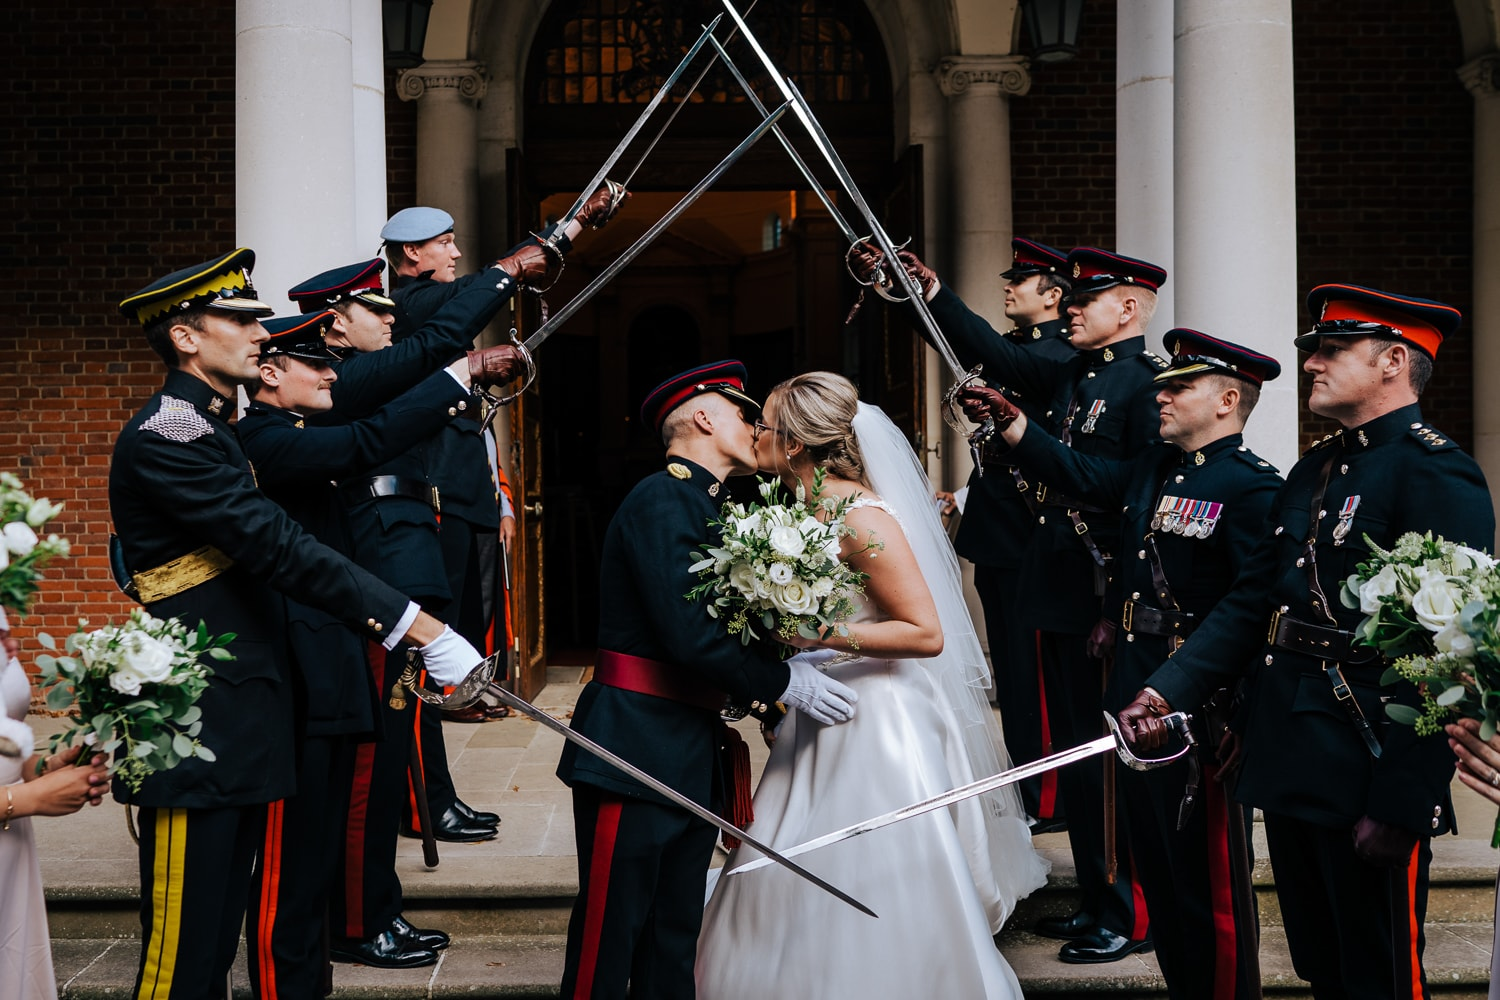 UK Military Wedding Photographer capturing wedding at RMAS